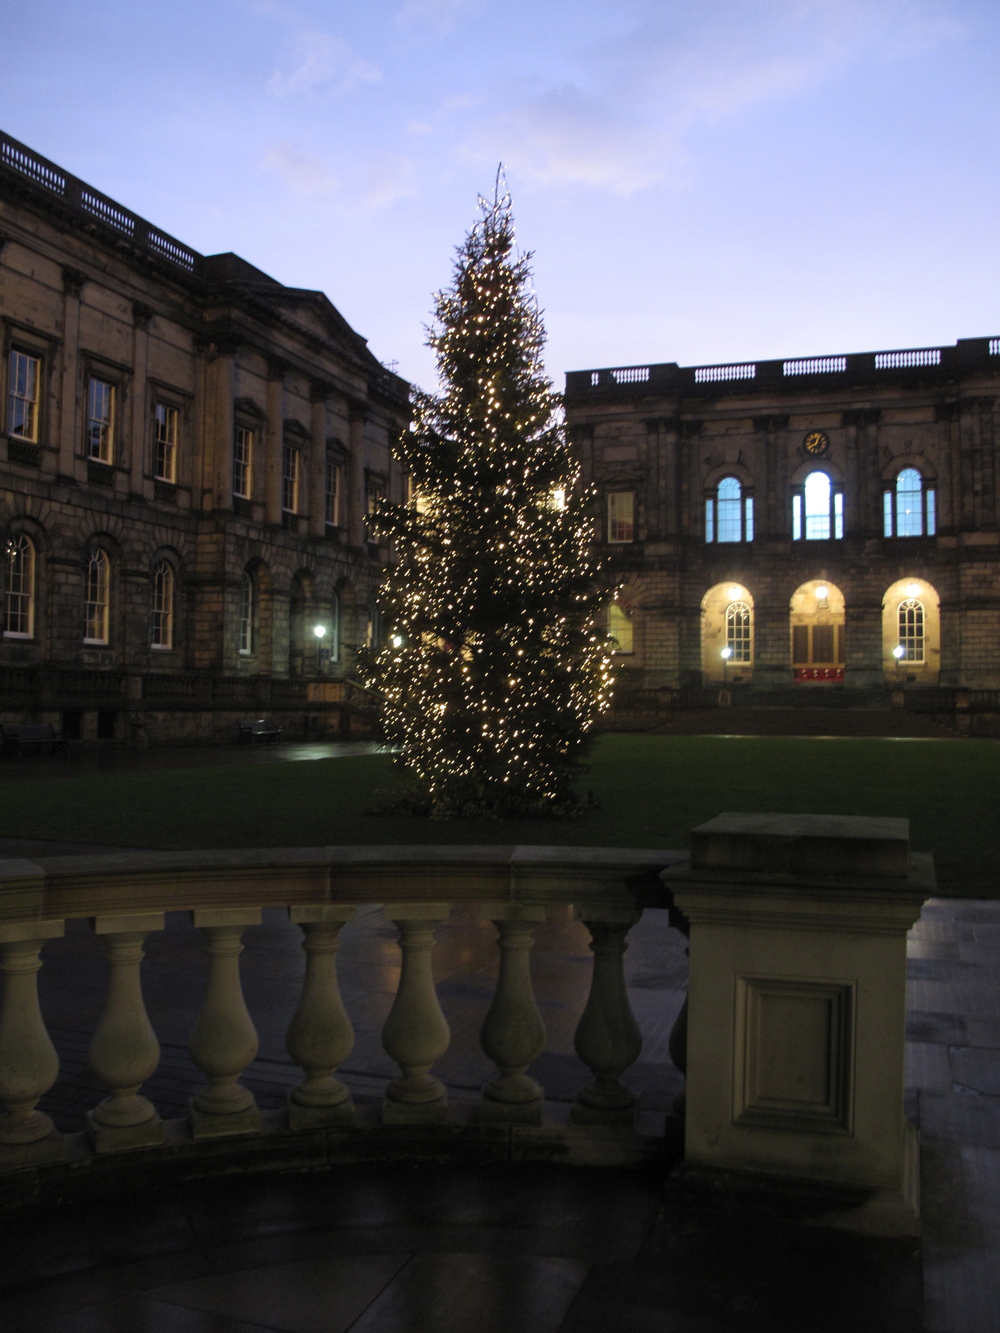 Christmas tree in the Medical department of the University of Edinburgh